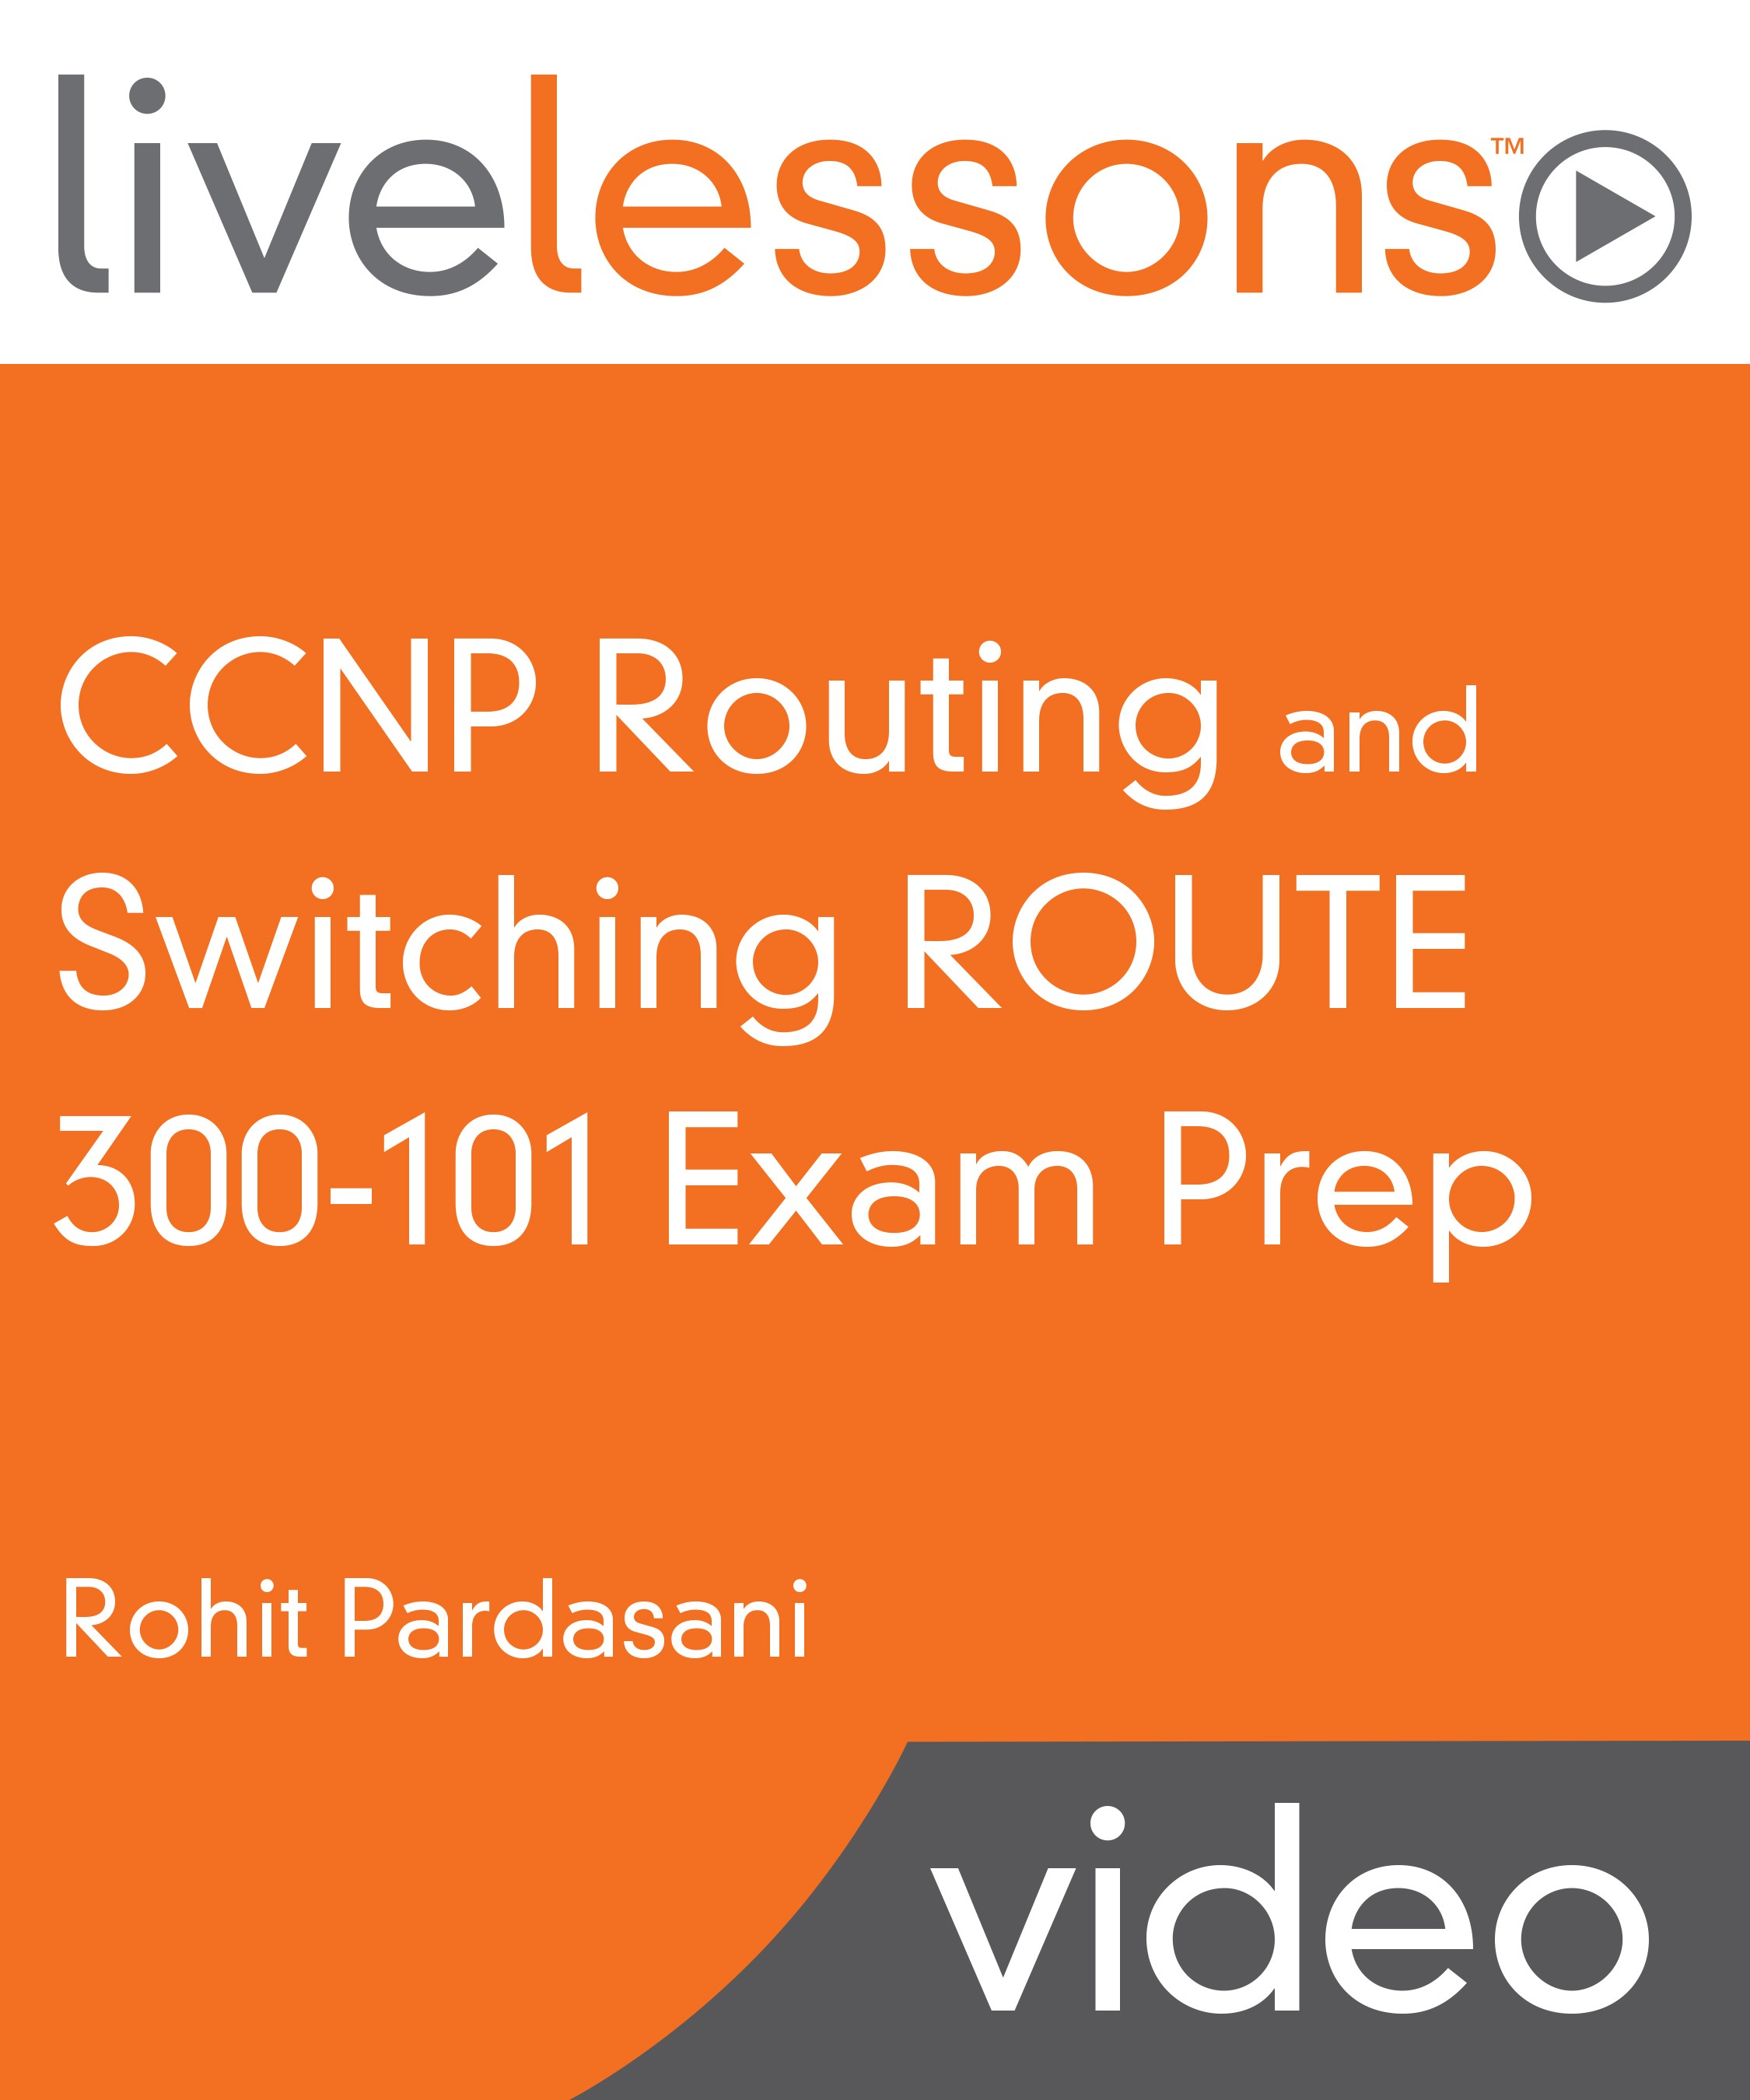 CCNP Routing and Switching ROUTE 300-101 Exam Prep Video LiveLessons